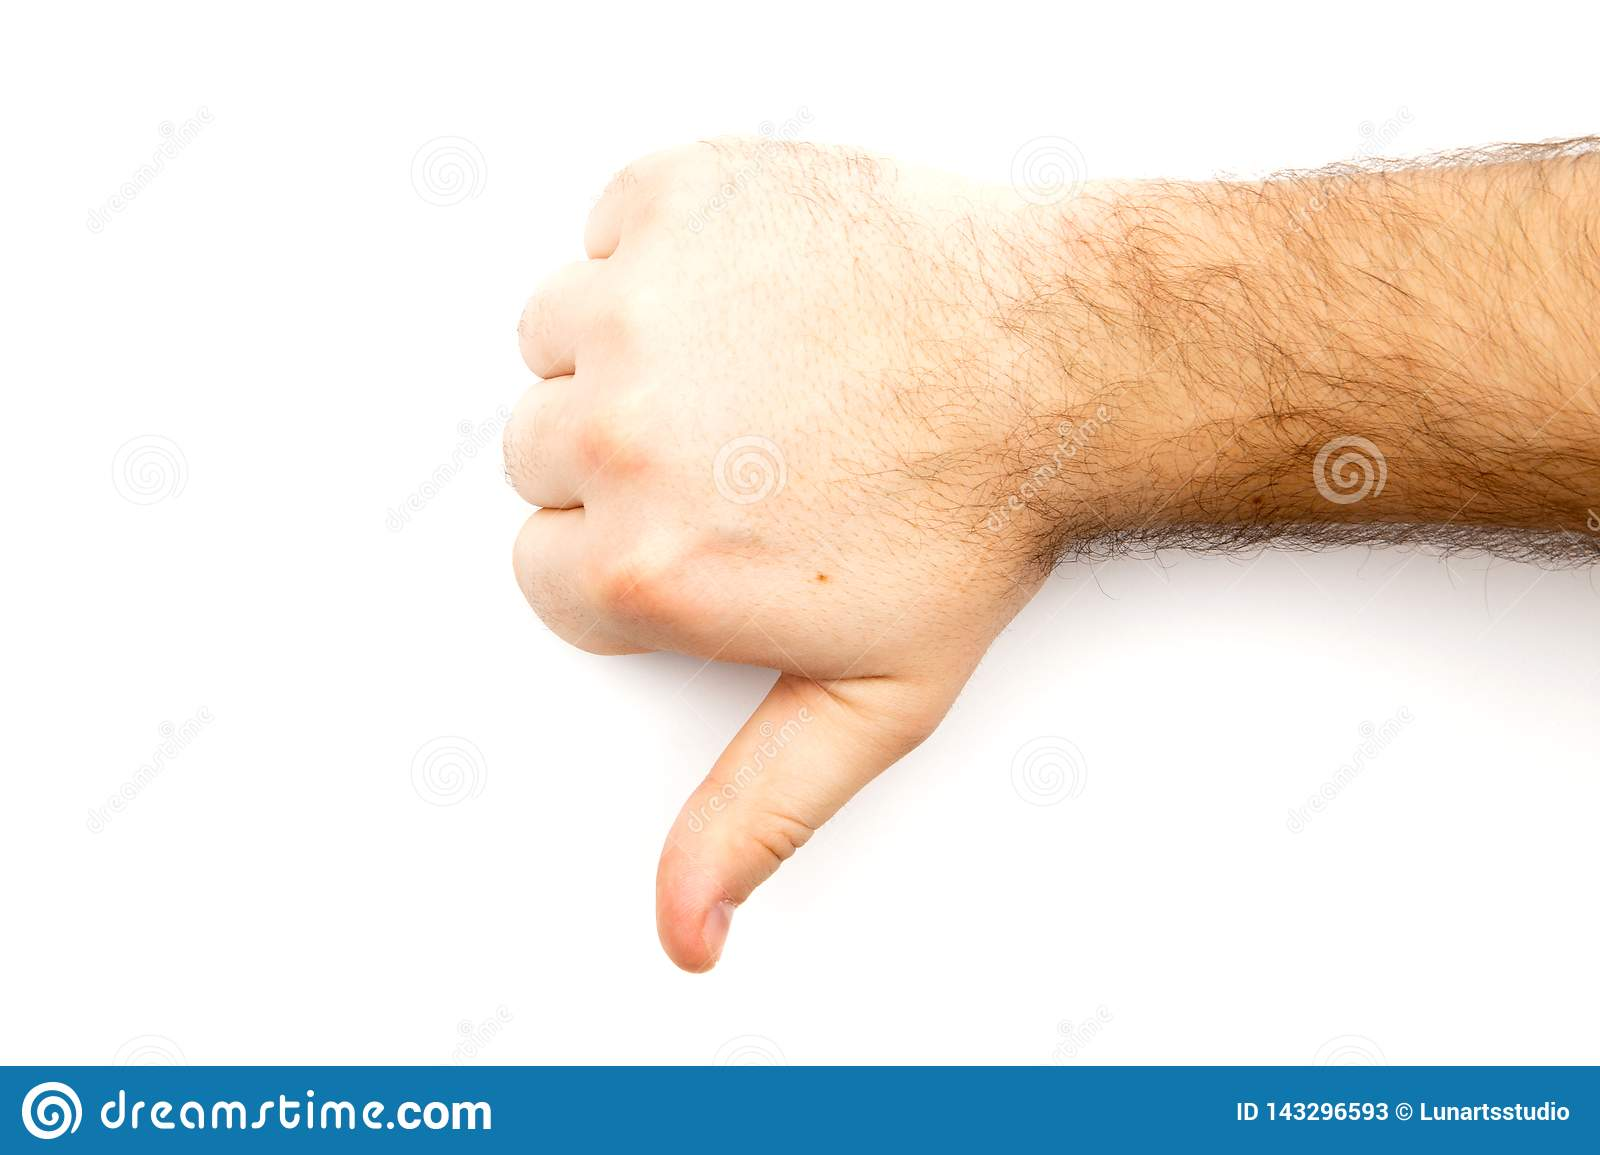 Male hairy hand showing Dislike, unlike, fail, disagree sign, thumb down hand with white background and copy space